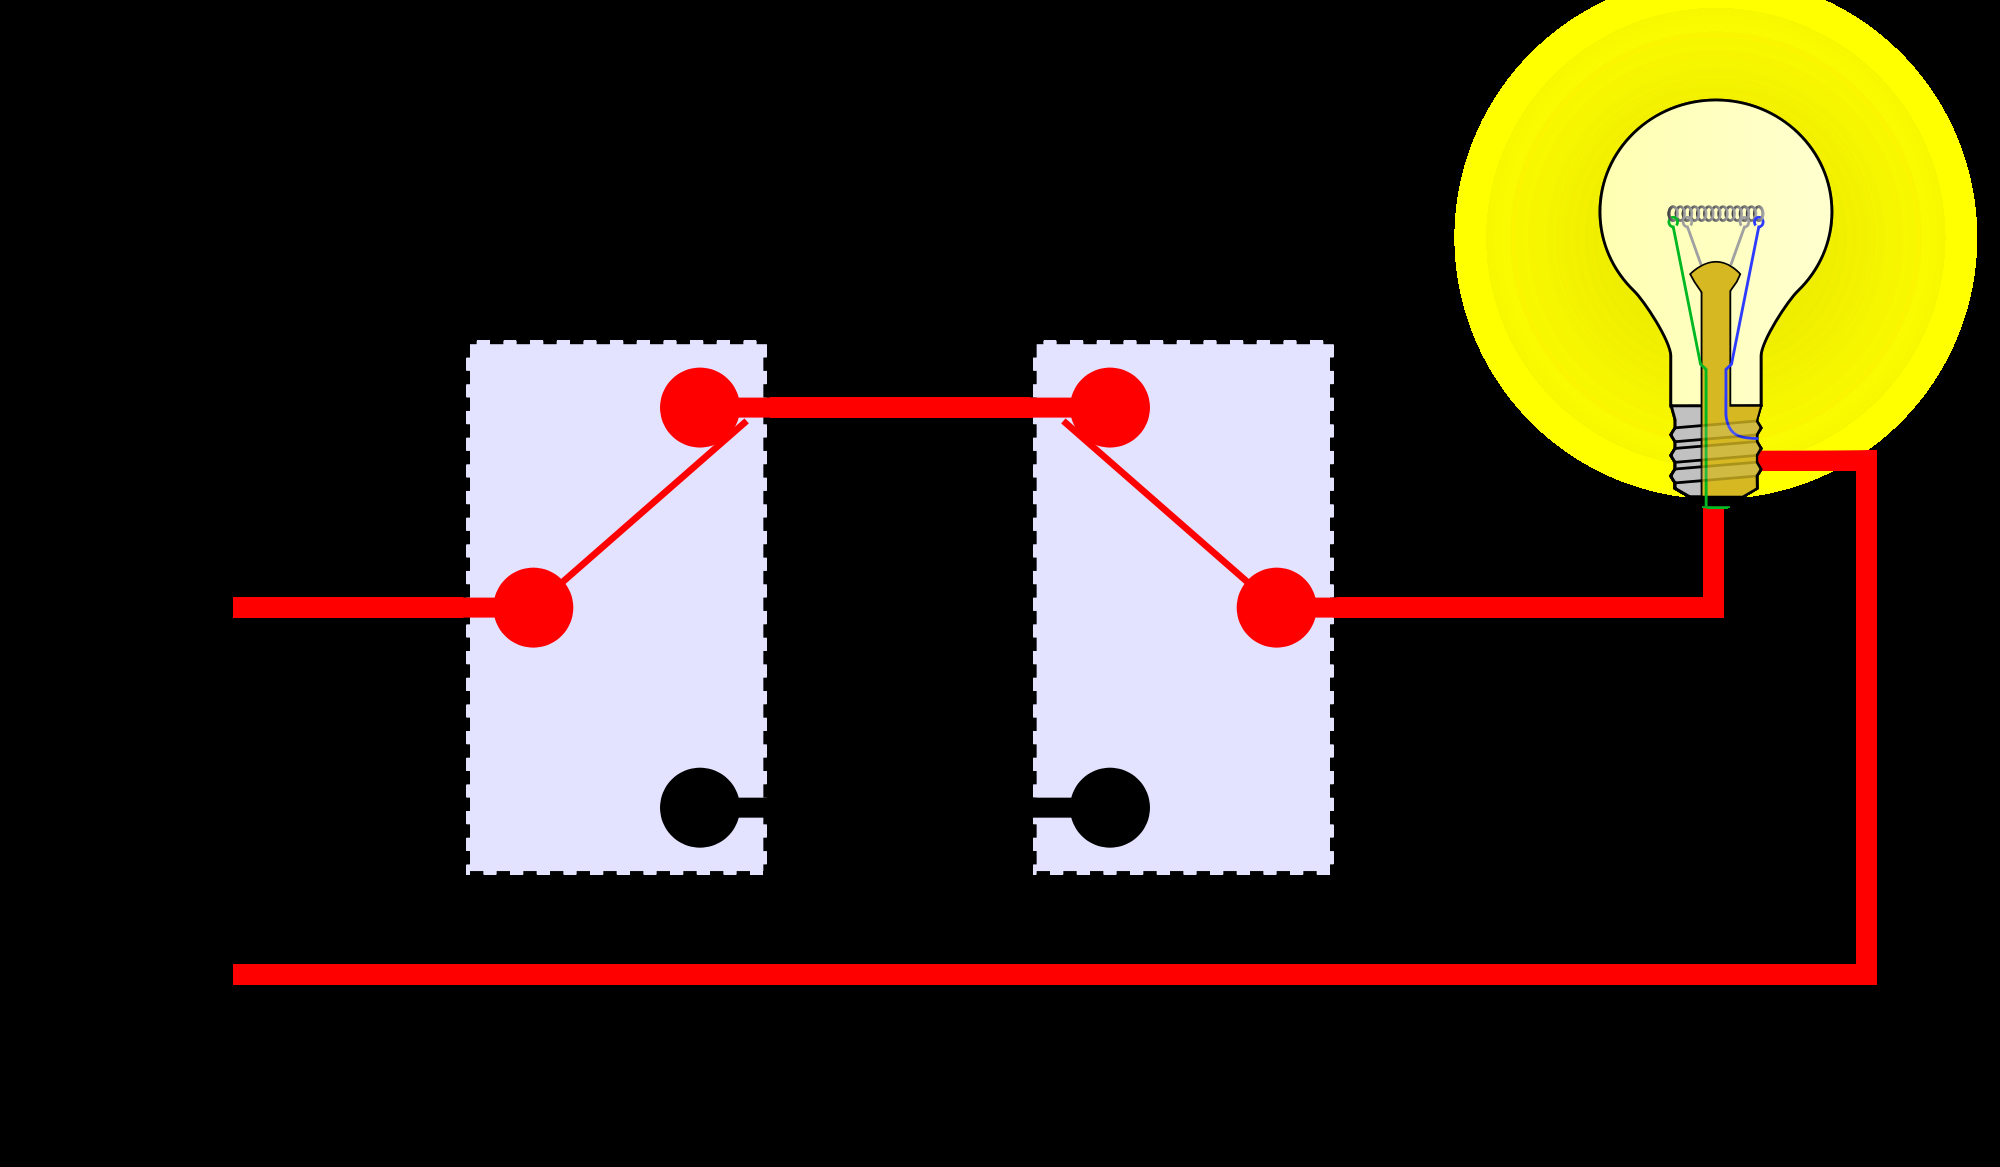 3 way switch wiring diagram light in middle Collection-enter image description here 8-p